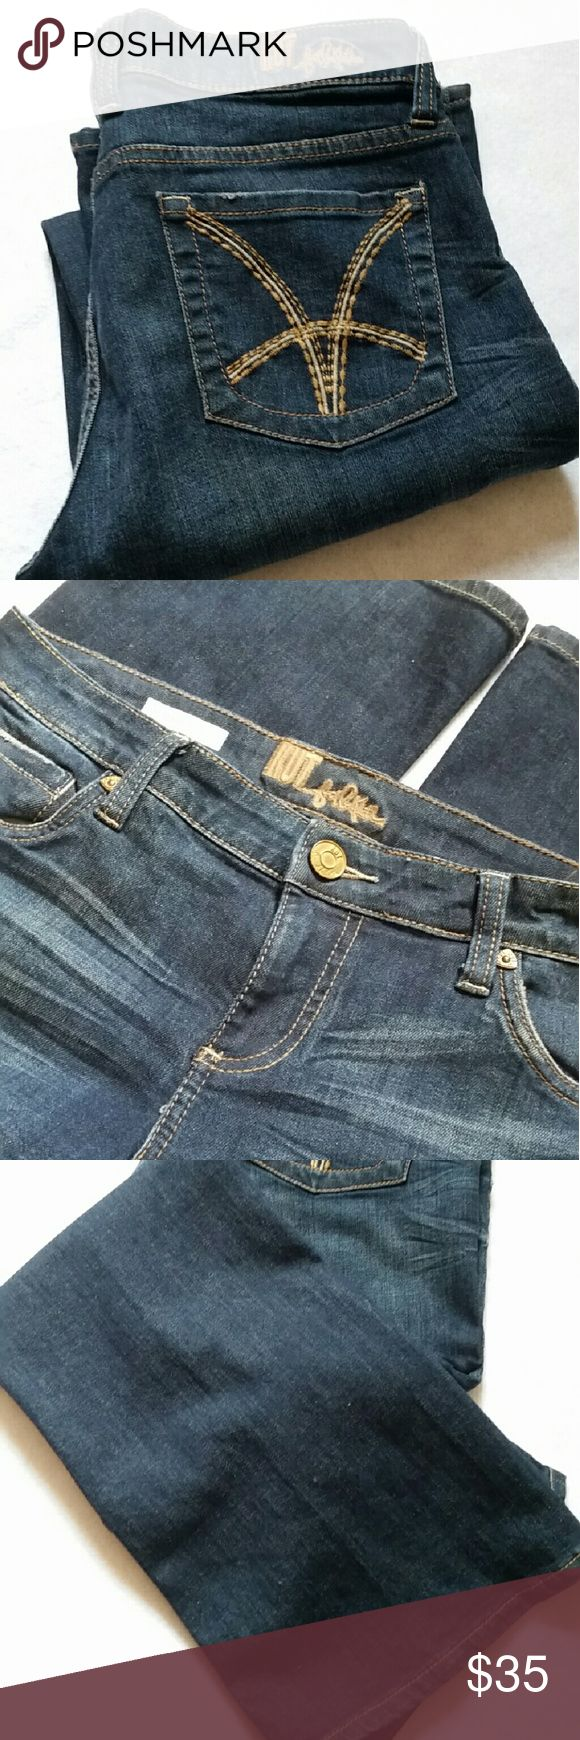 KUT Jeans Blue KUT jeans with back pocket detail. 99% cotton 1% spandex. 31 1/2 inseam. KUT Jeans